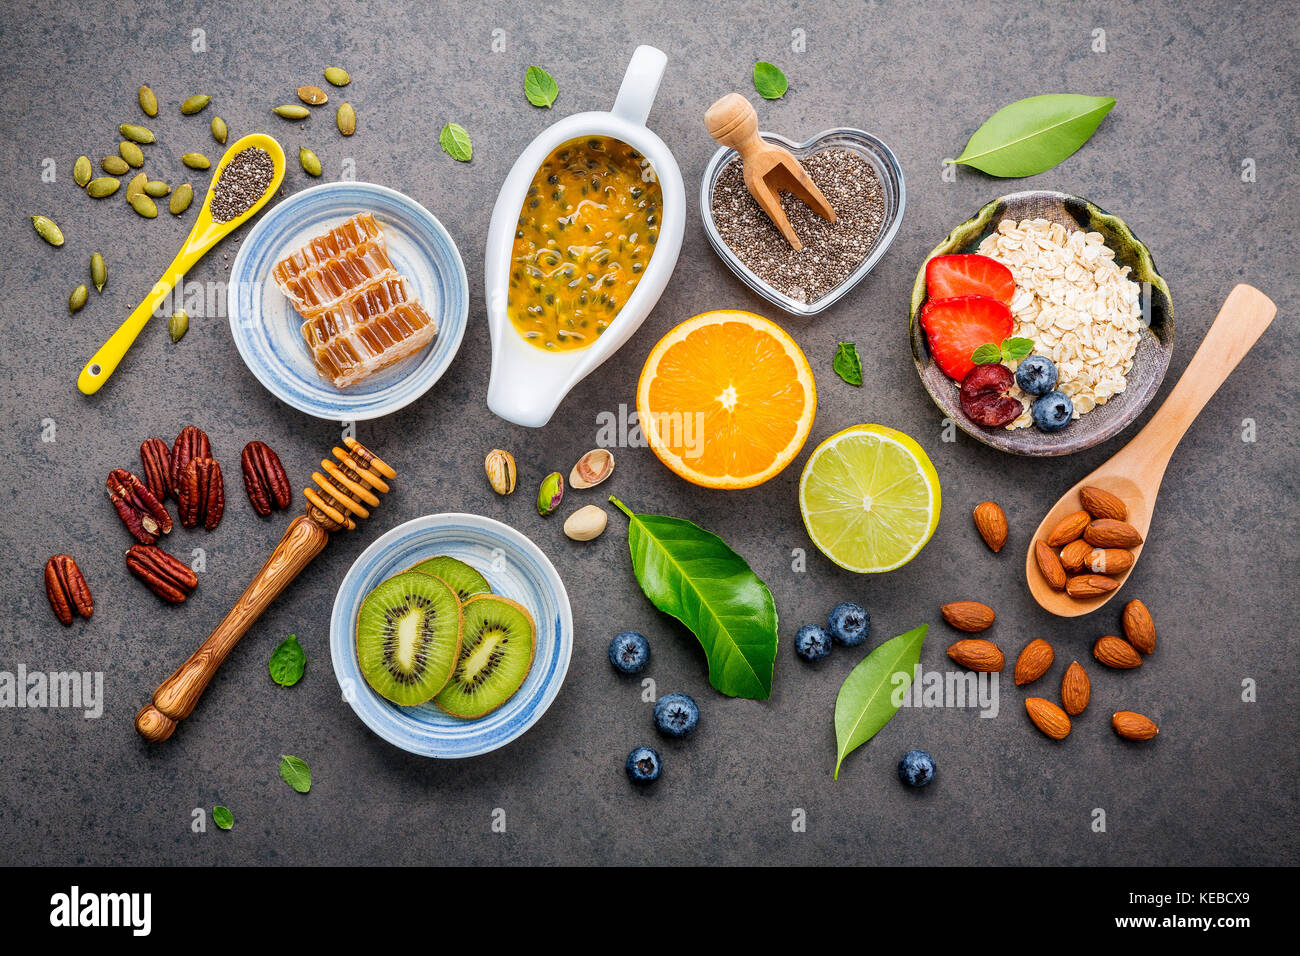 Ingredients for the healthy foods background Mixed nuts, honey, berries, fruits, blueberry, orange, almonds, oatmeal - Stock Image